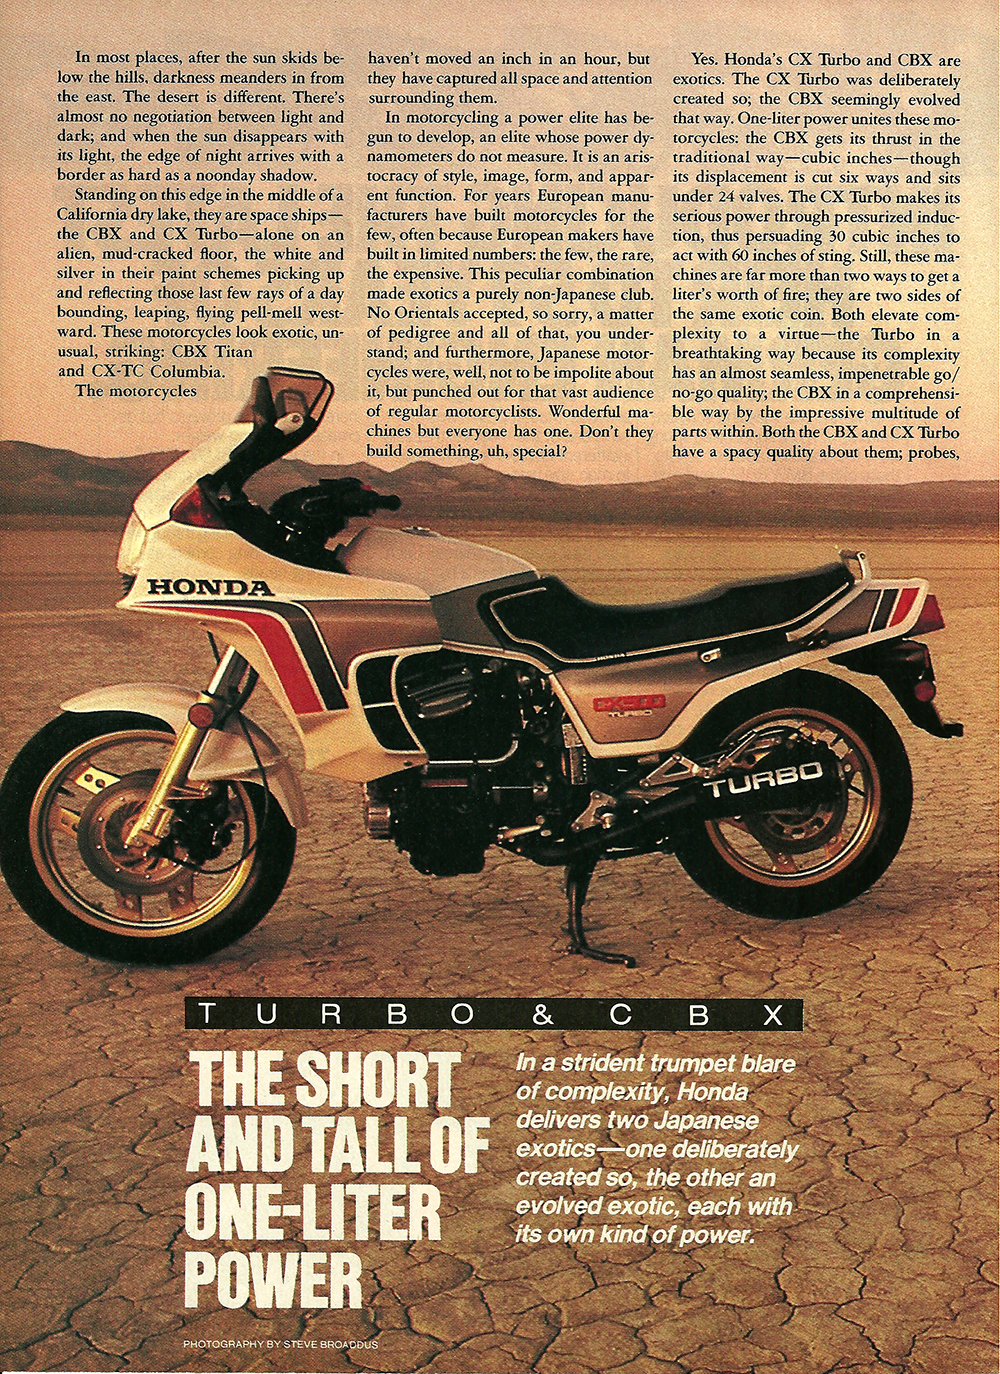 1982 Honda CBX vs CX 500 Turbo road test 01.jpg